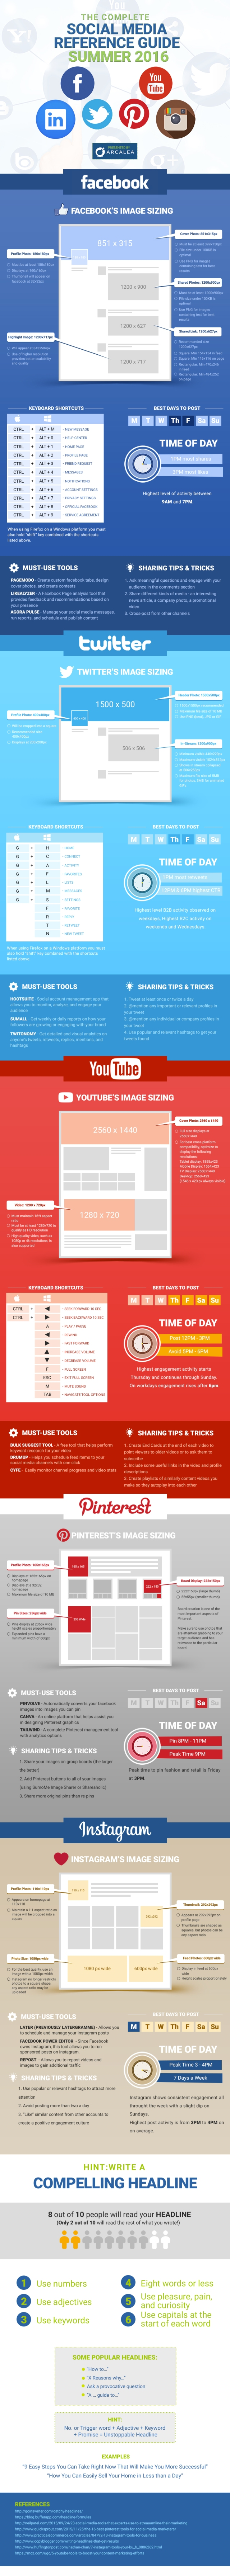 a-beginners-guide-to-social-media-image-sizes-times-to-post-more